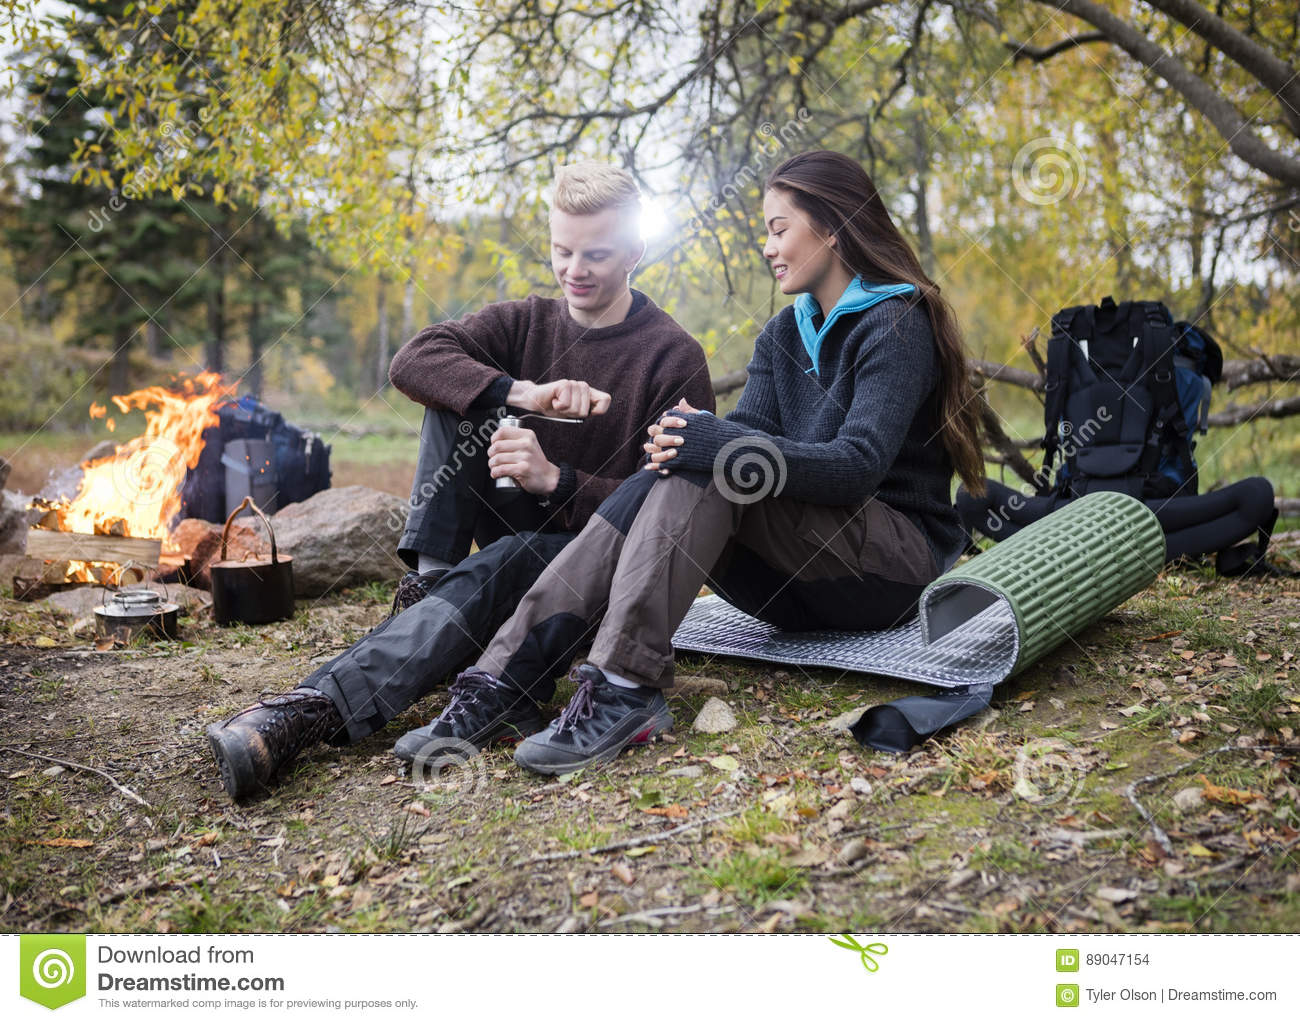 Woman With Man Grinding Coffee During Camping In Forest